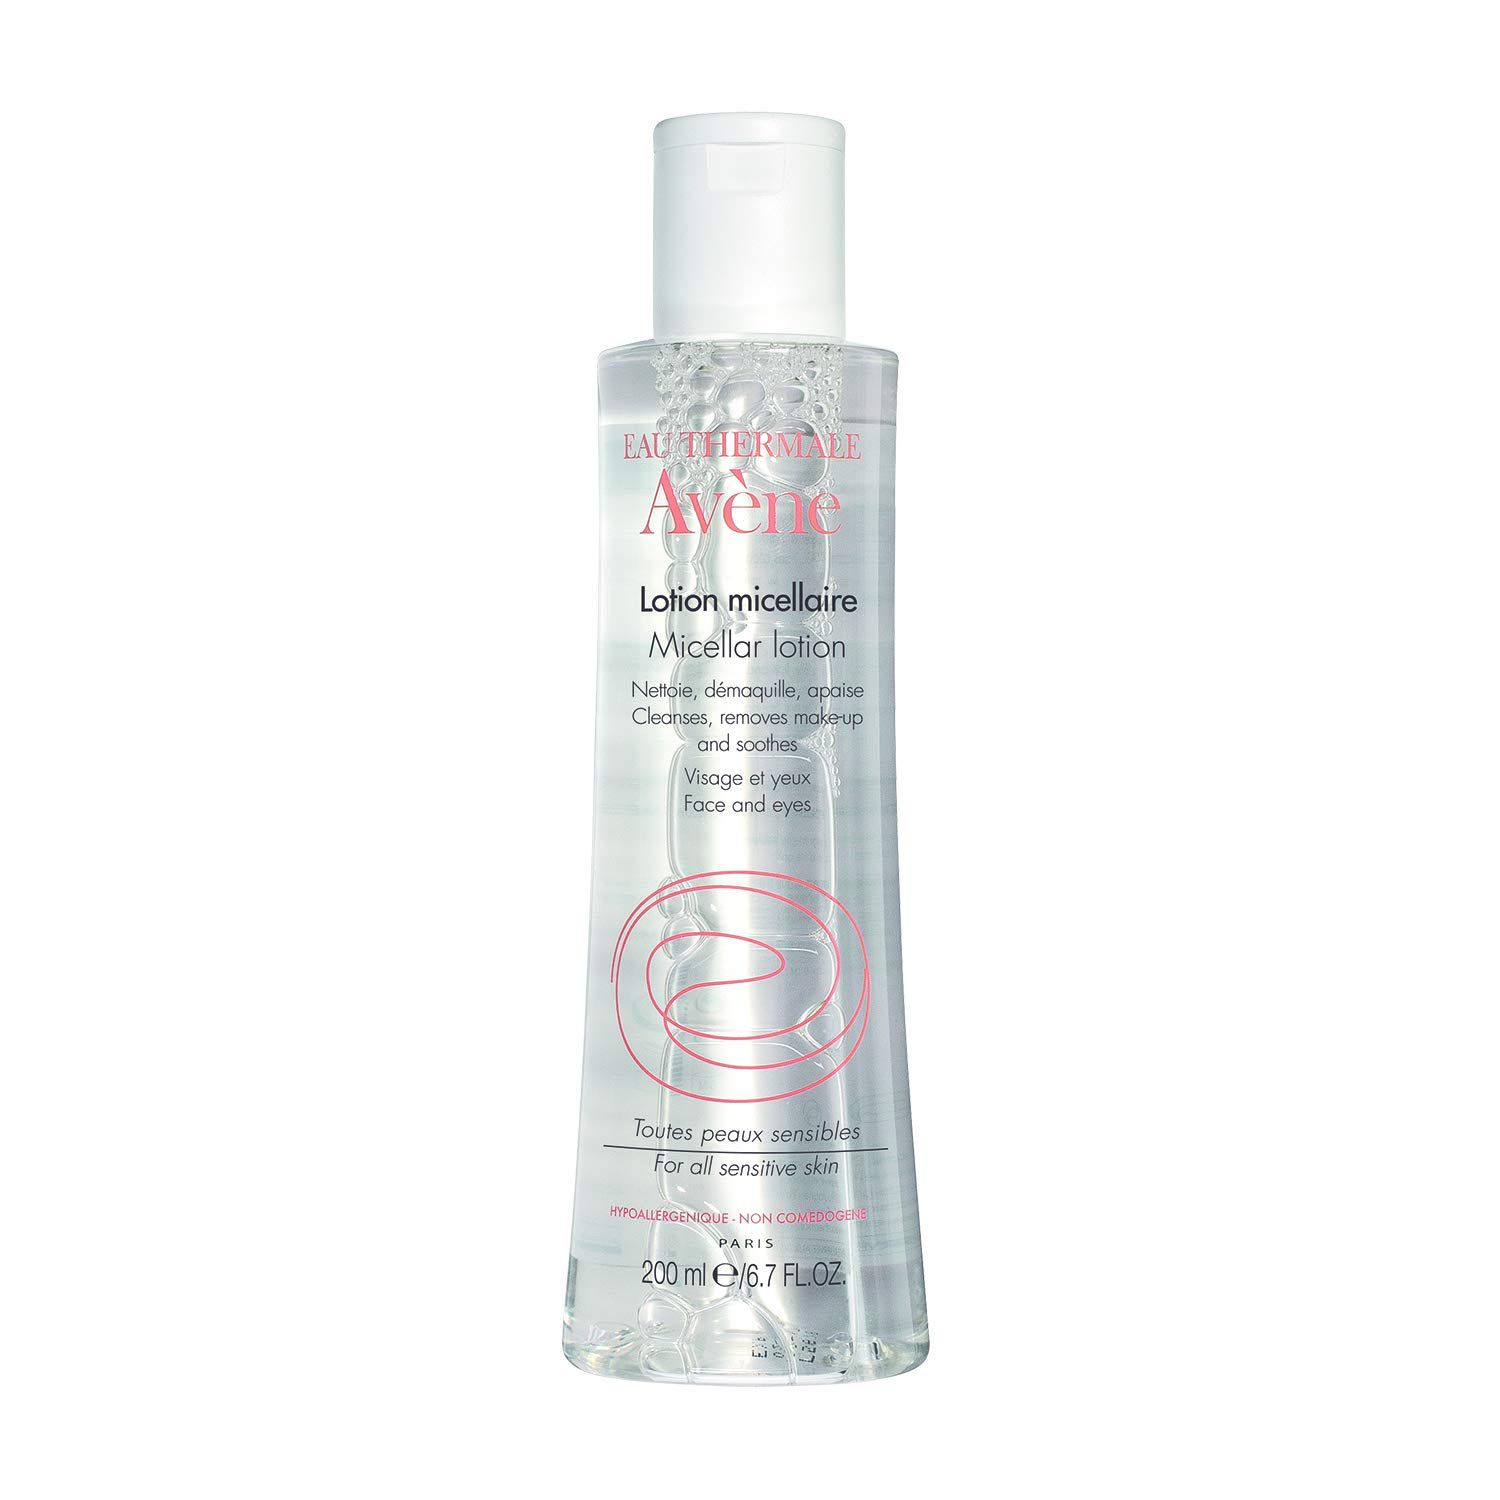 Avene Eau Thermal Micellar Lotion Cleansing Water Make-up Remover